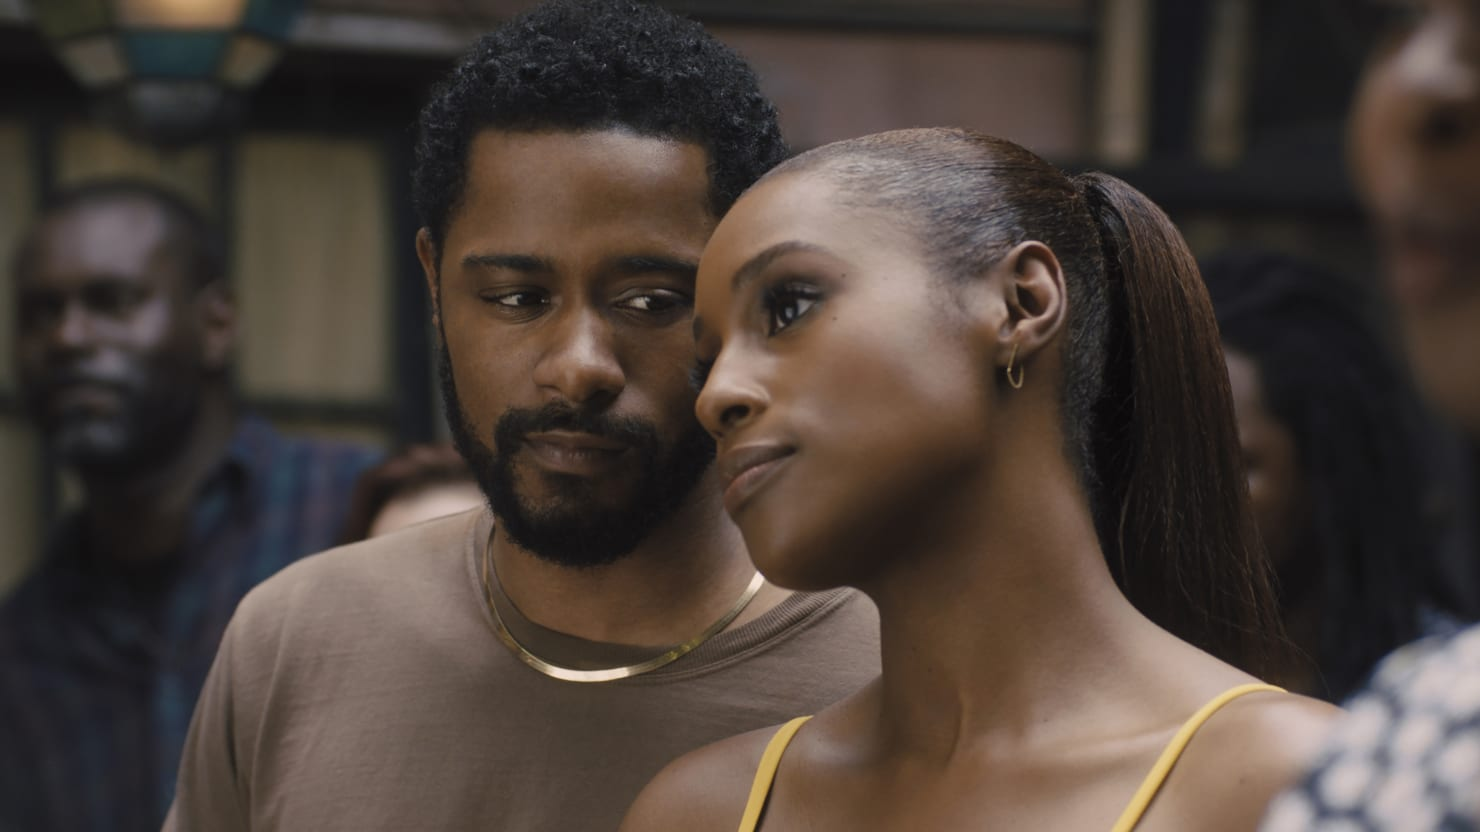 The Importance of Showing Modern Black Love On Screen